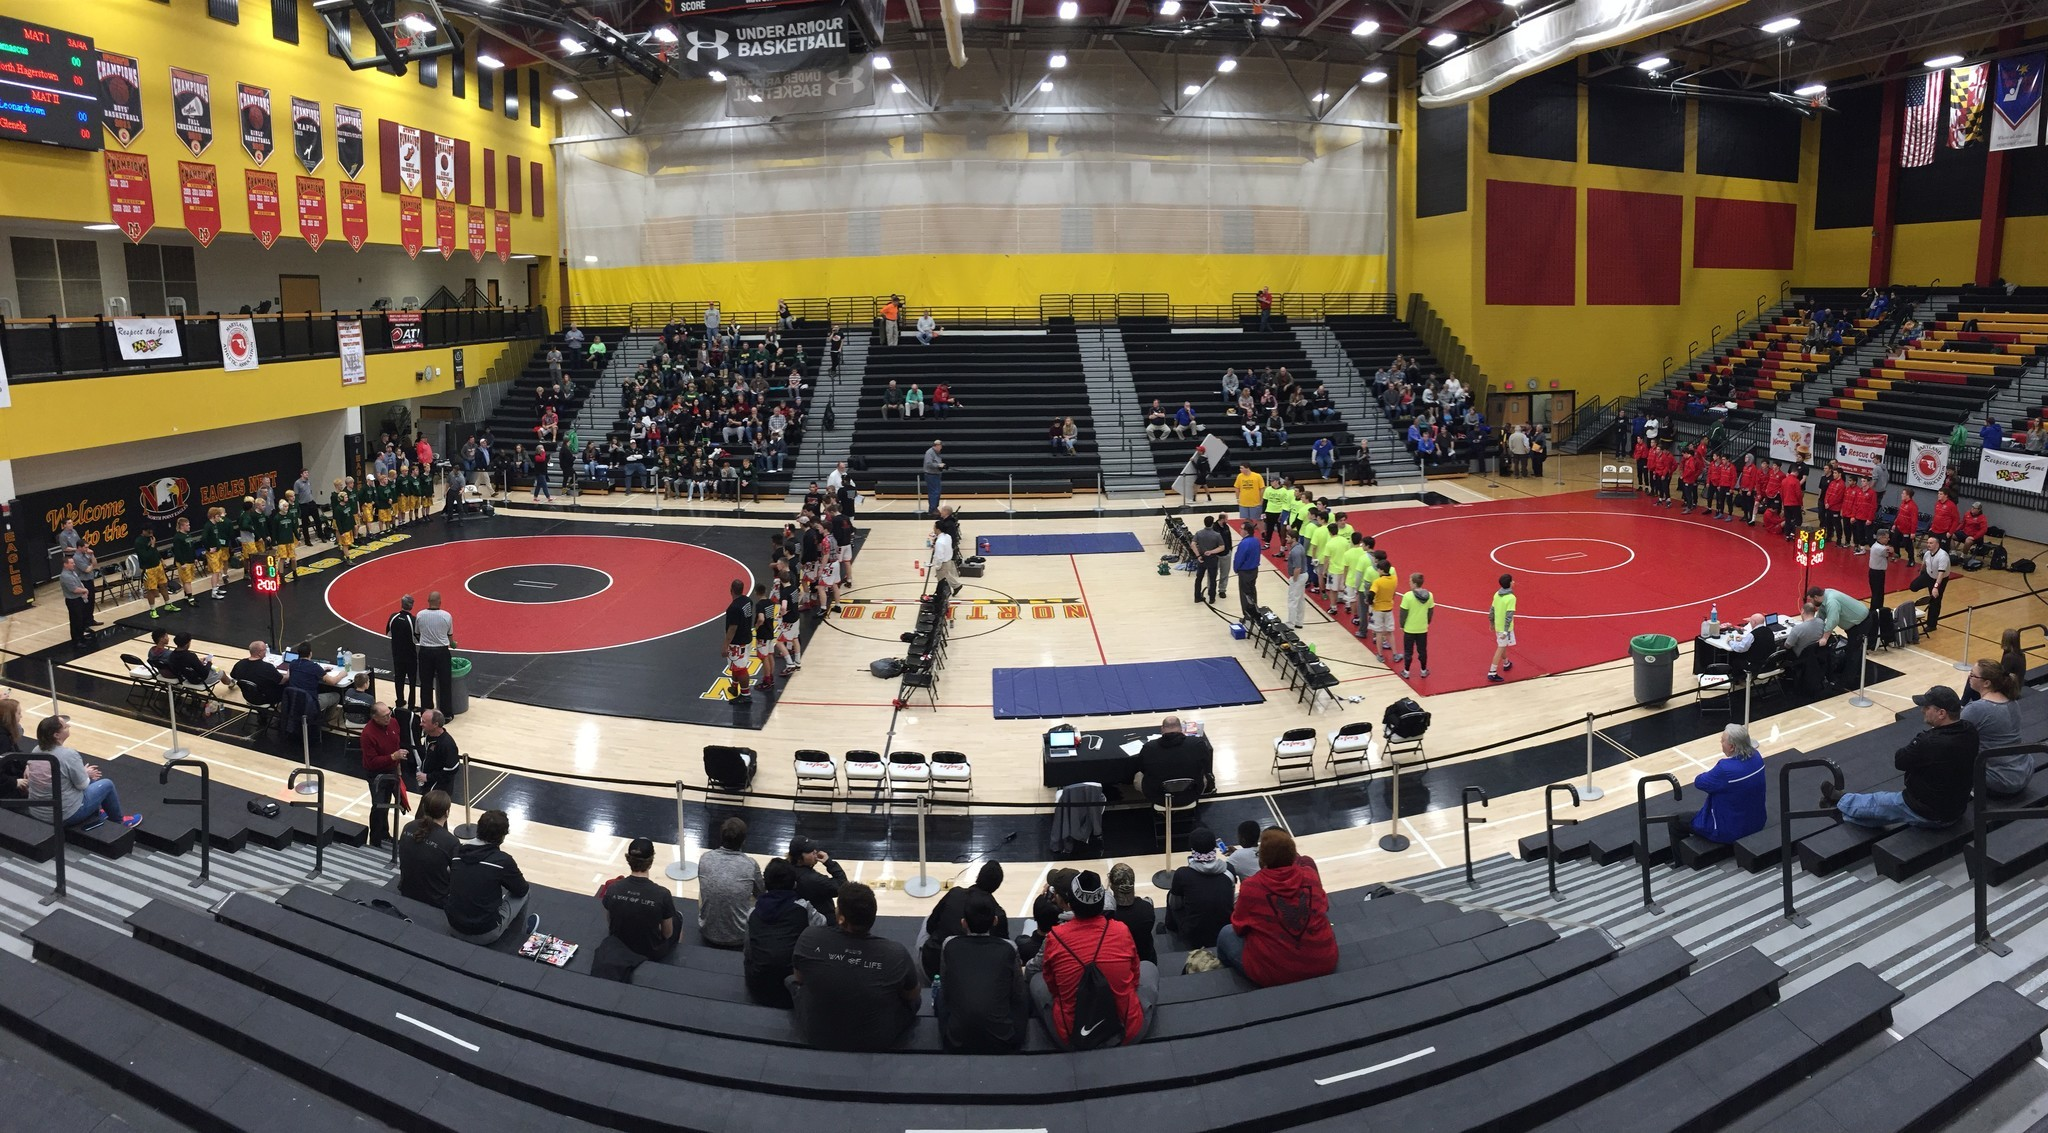 Glenelg Sparrows Point fall in state wrestling dual